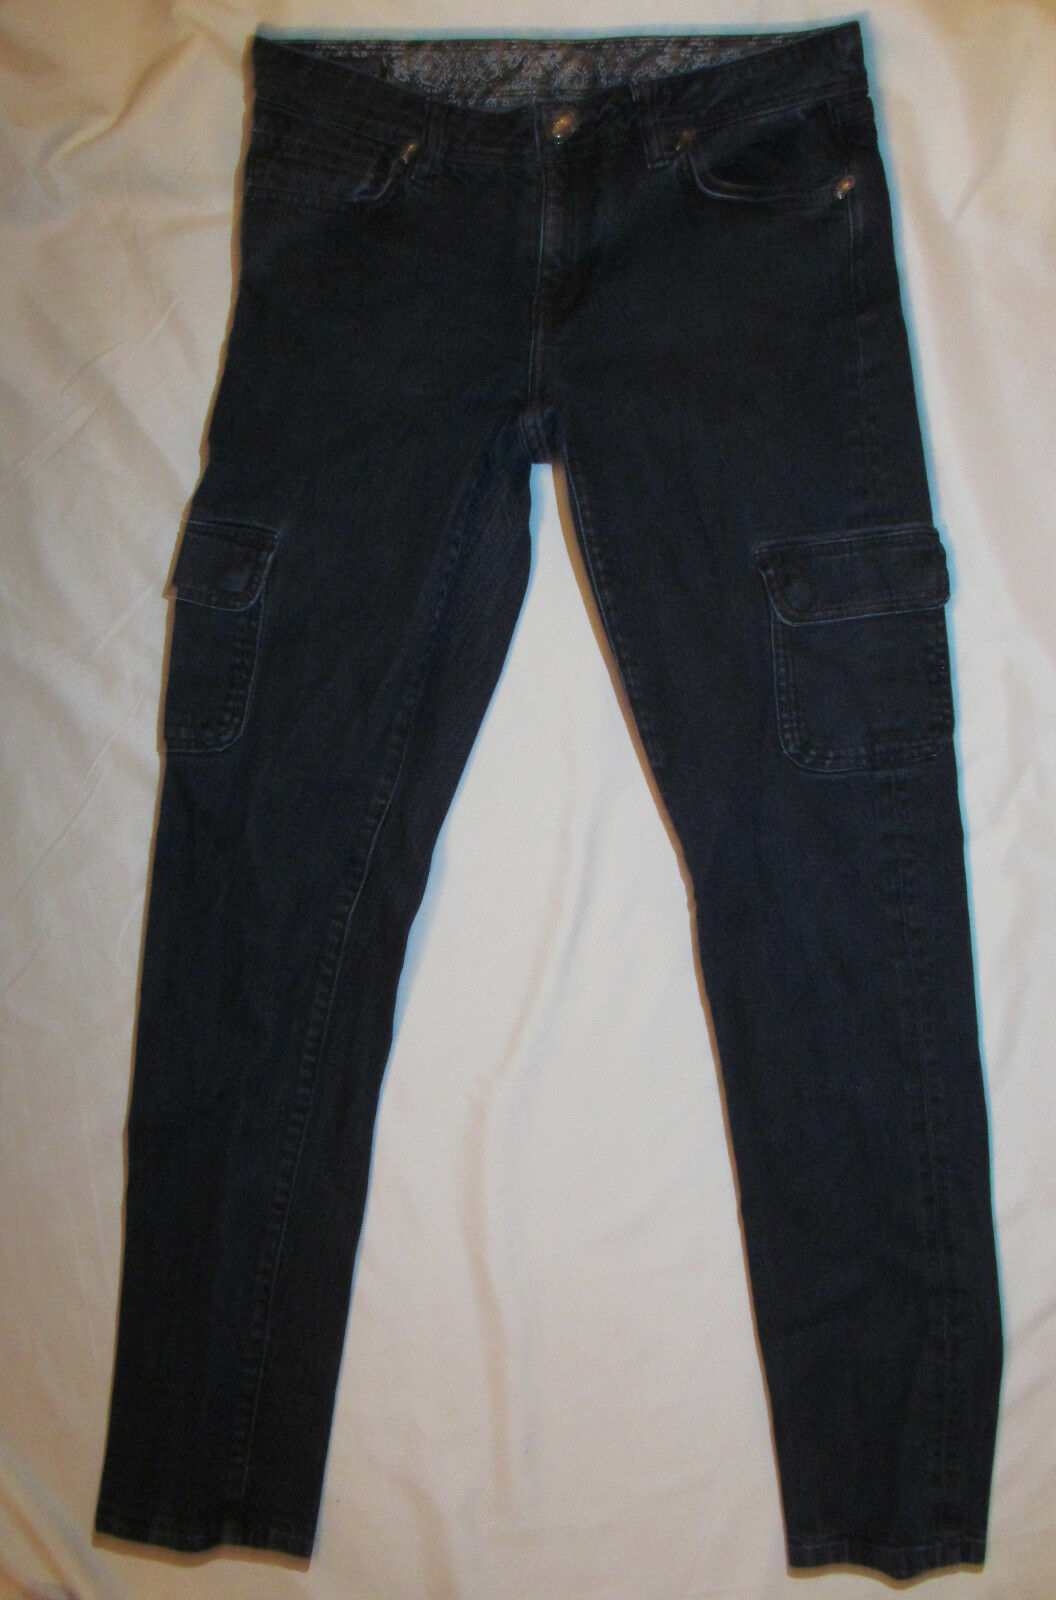 PATAGONIA ORGANIC COTTON dark wash skinny cargo stretchy jeans 28